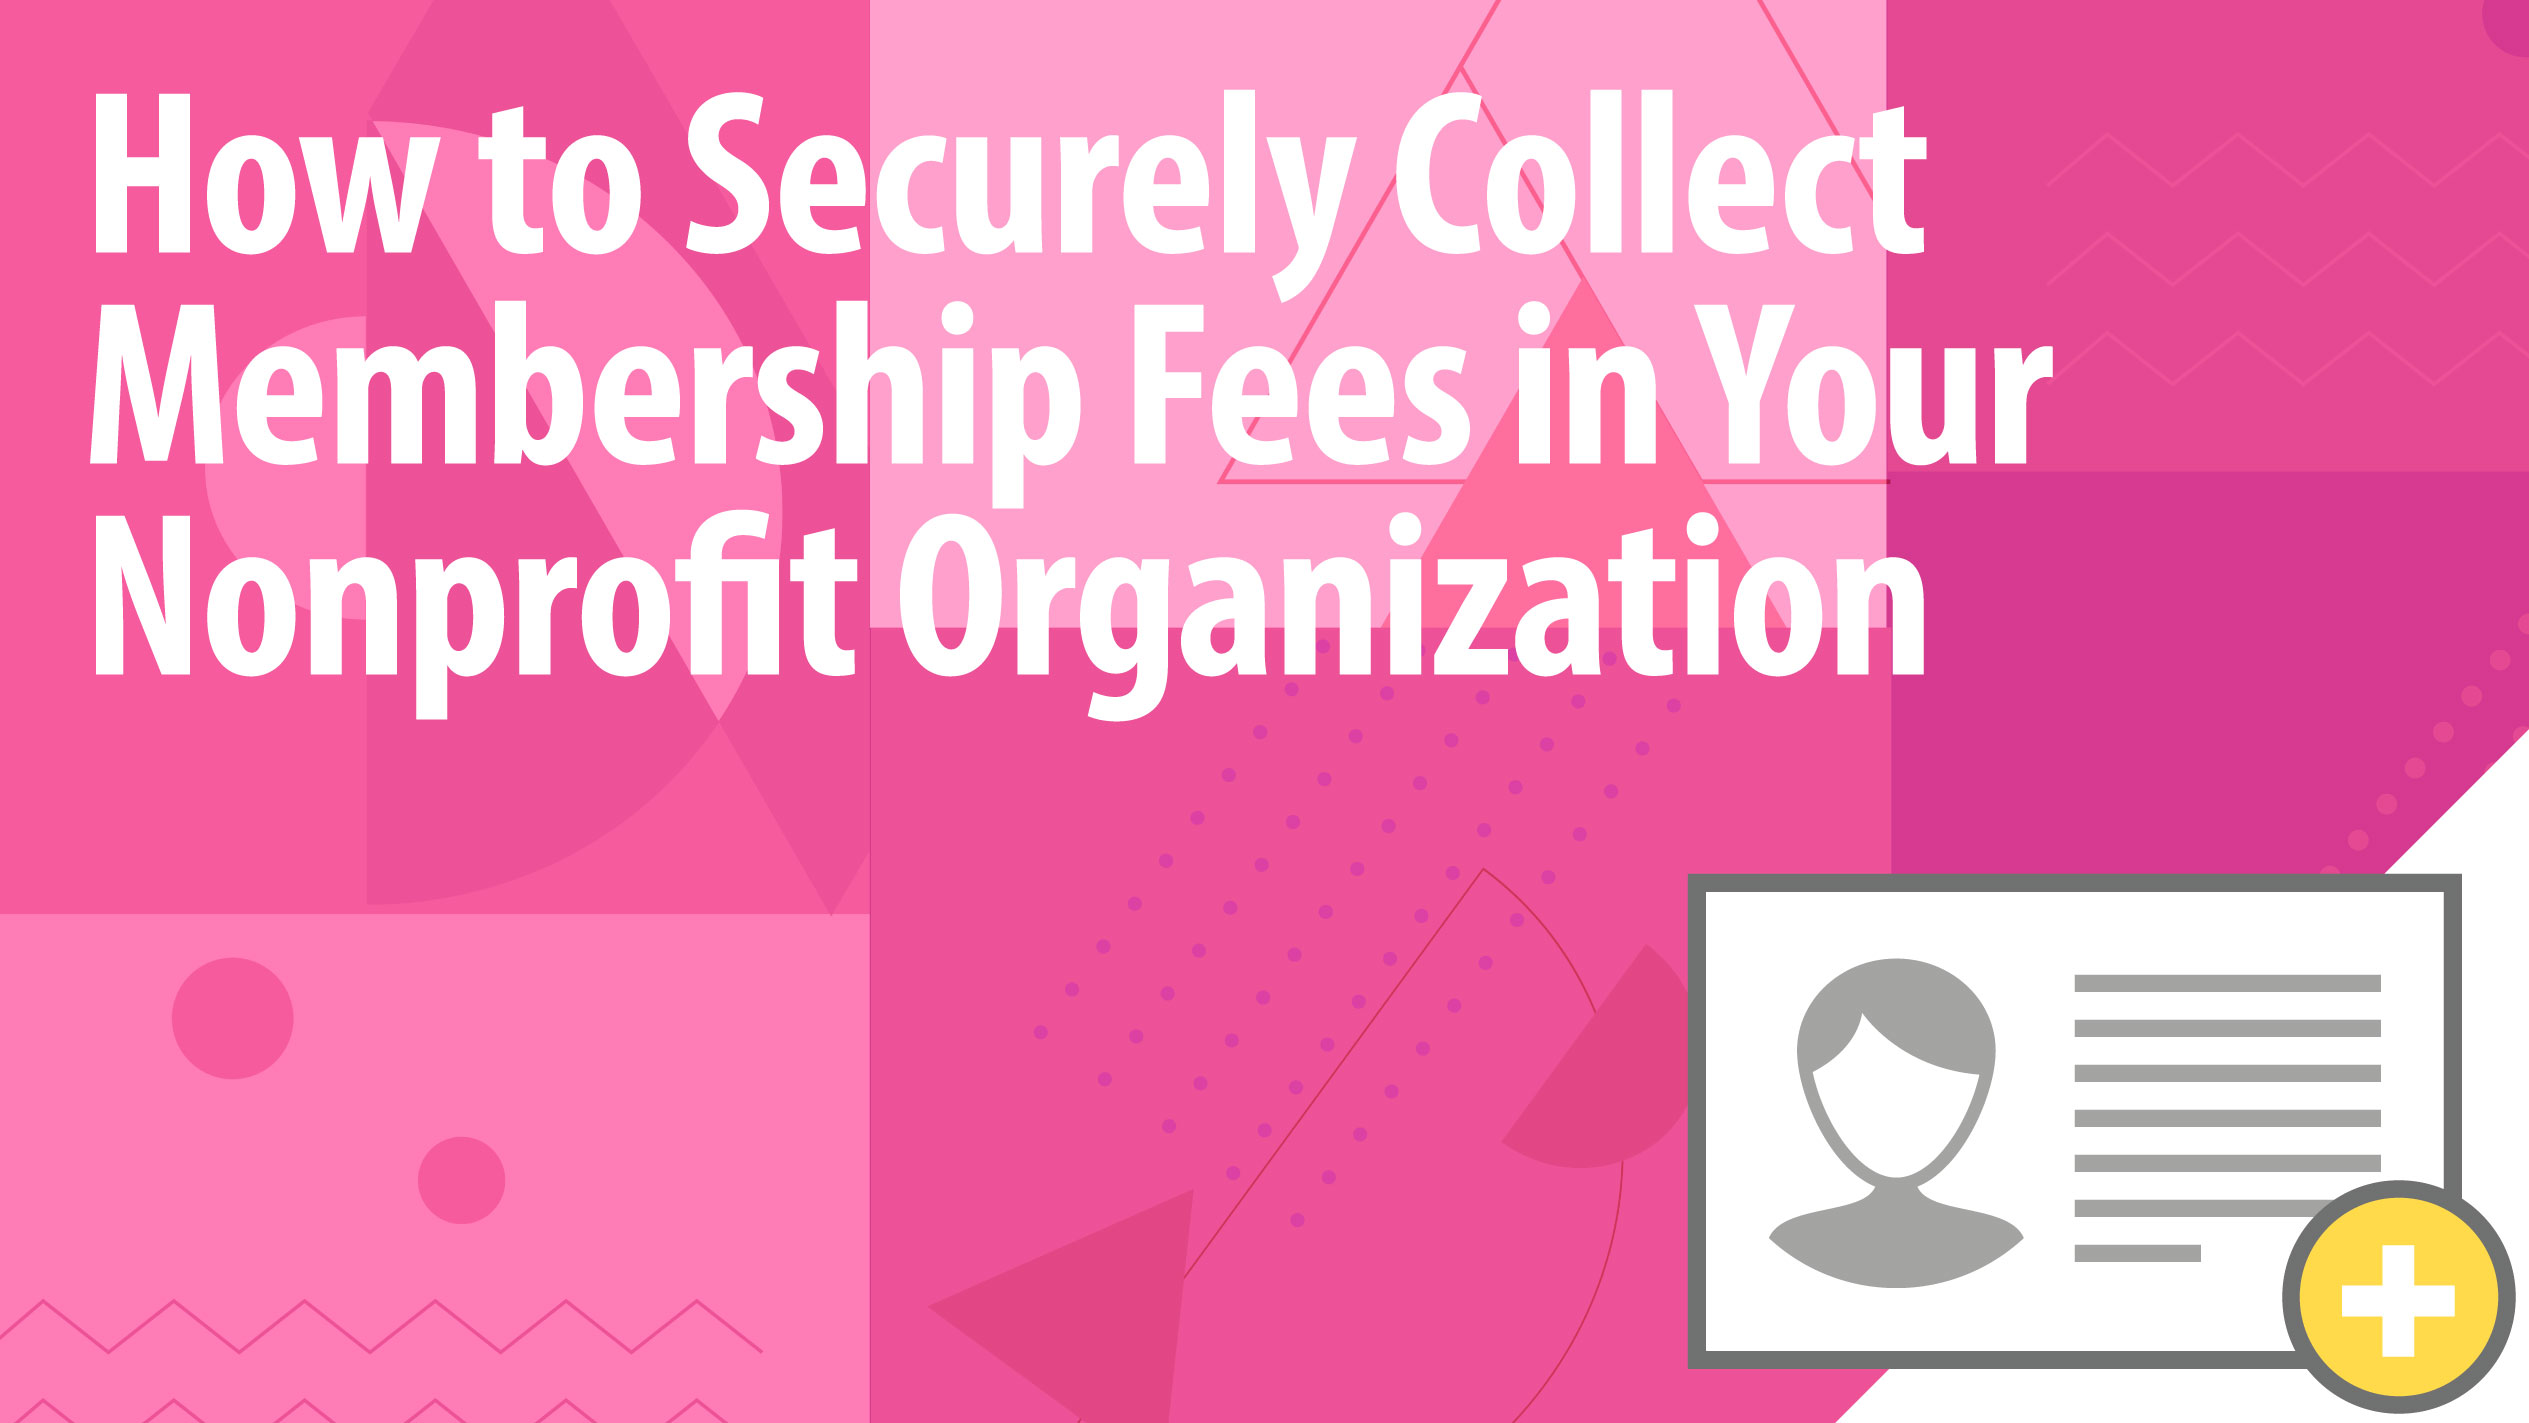 How to Securely Collect Membership Fees in Your Nonprofit Organization